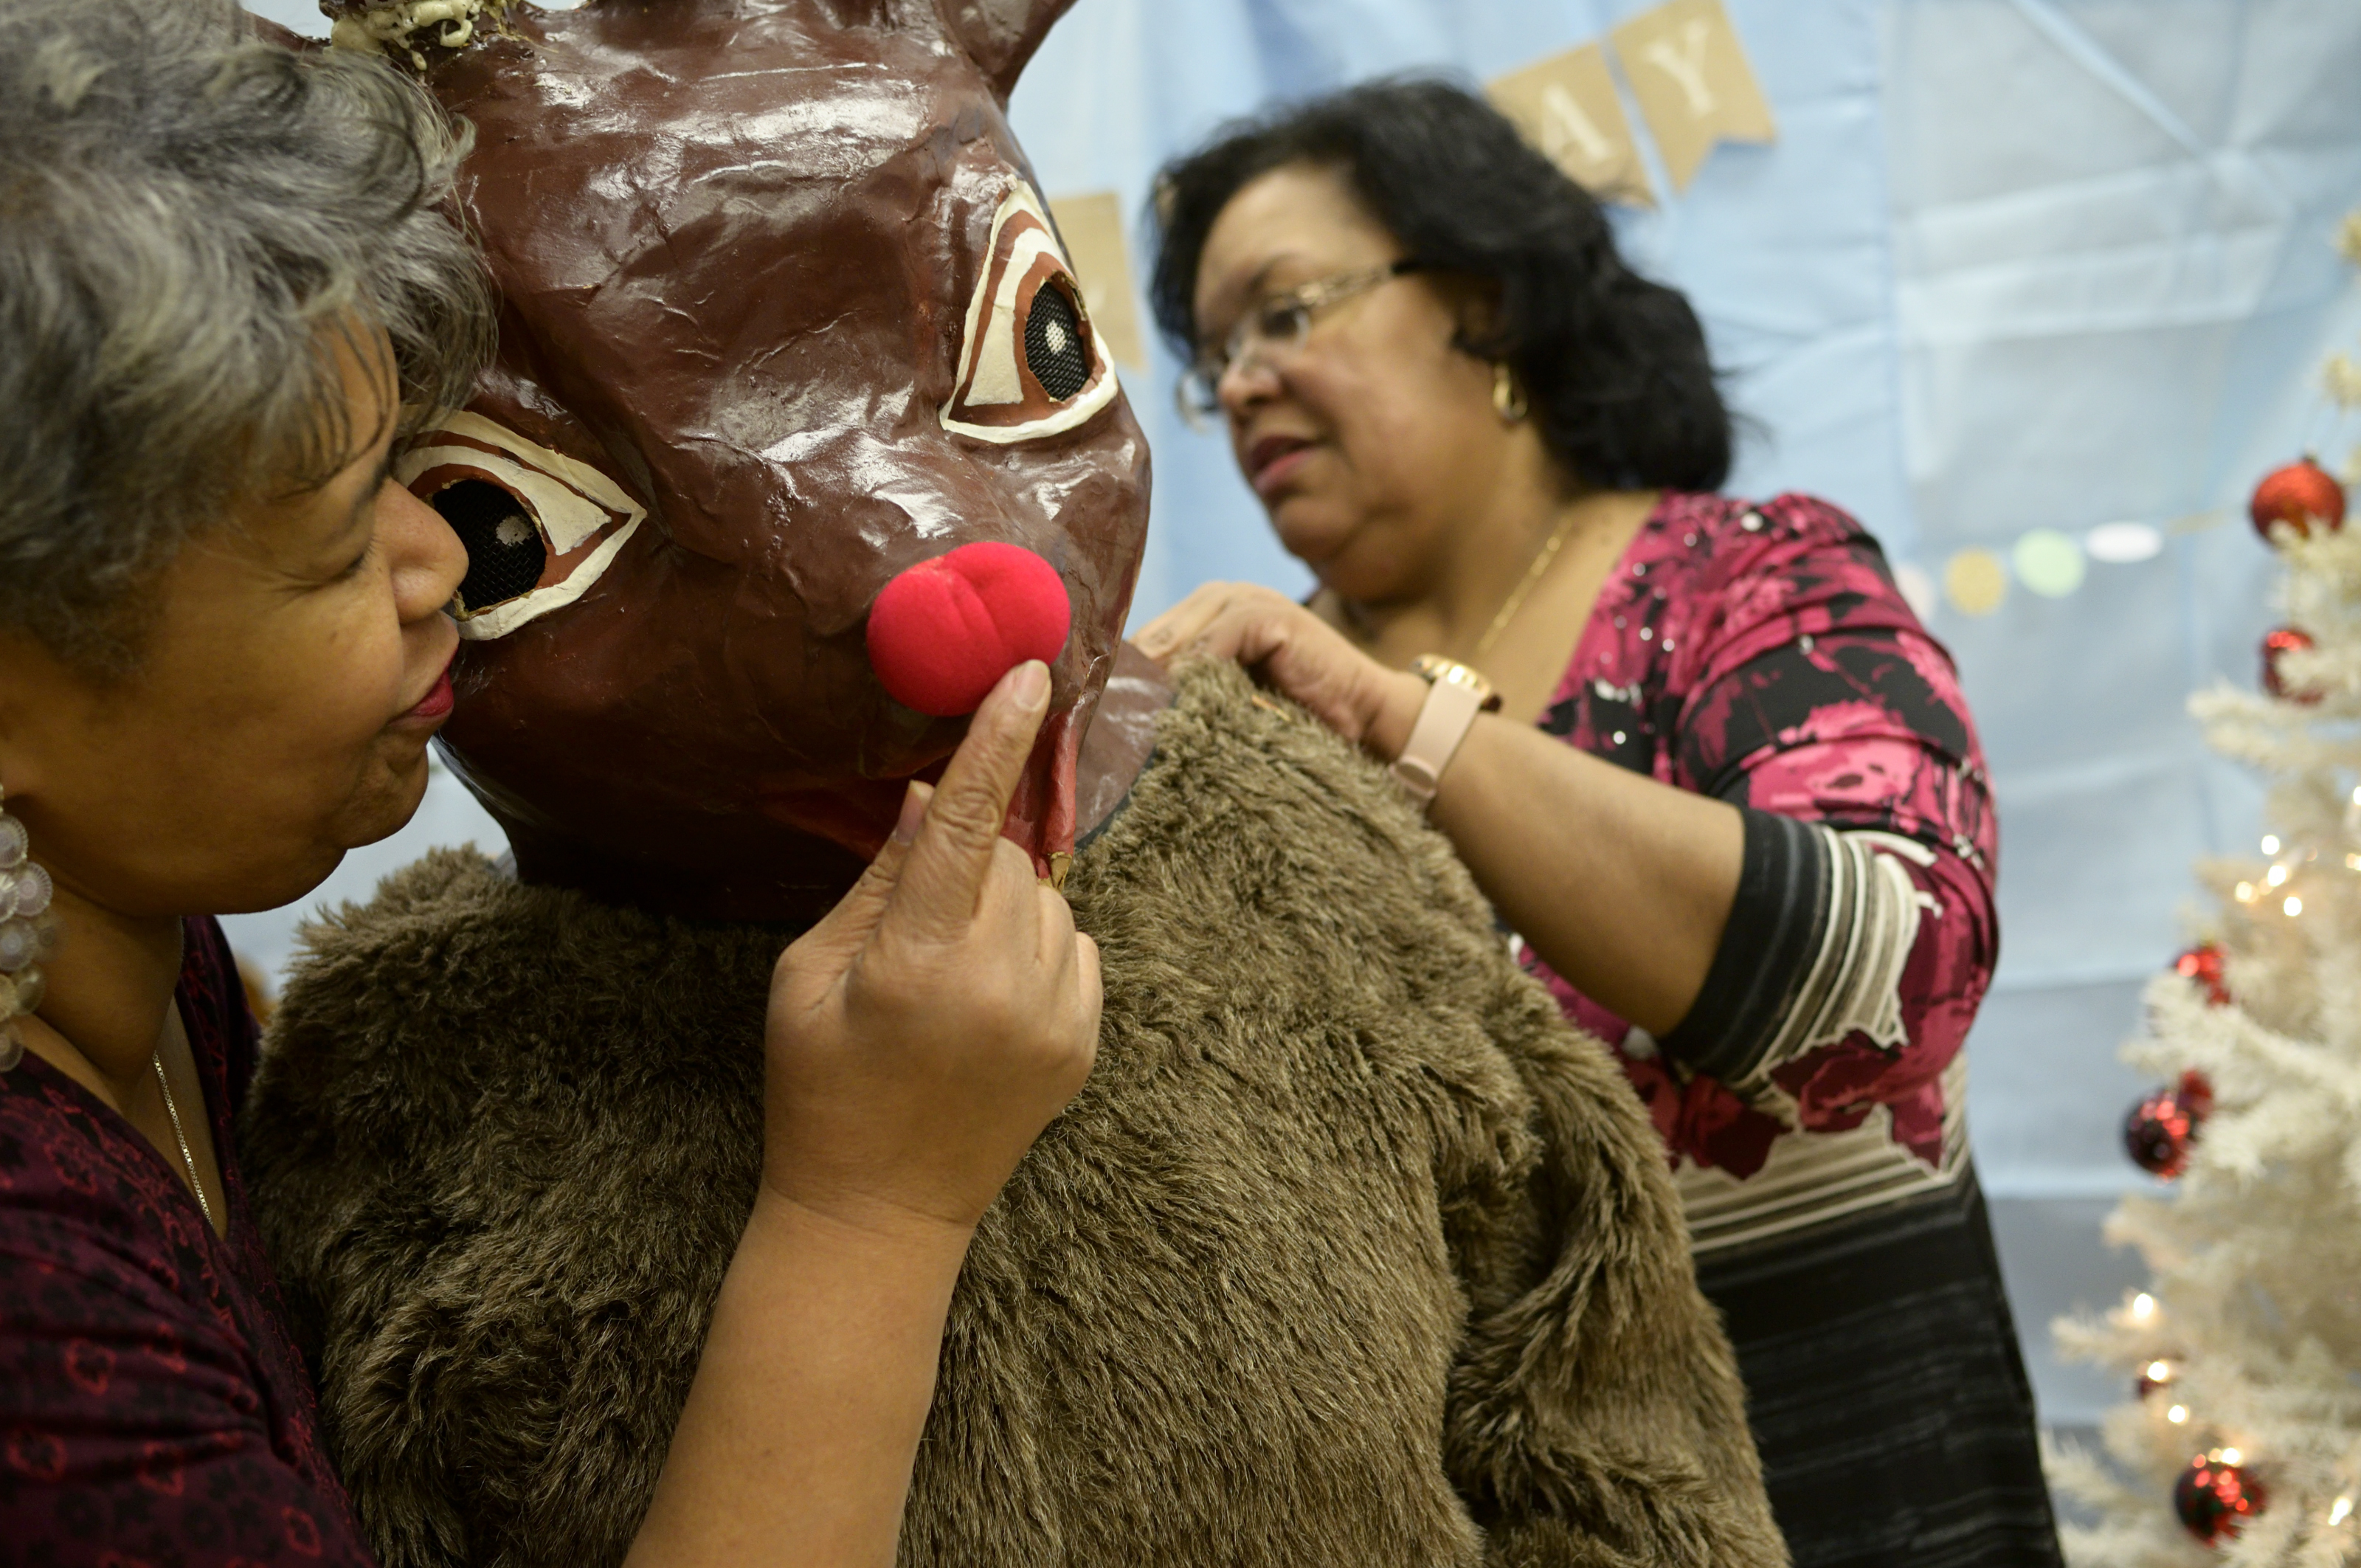 Staff members from Councilwoman Parker's office help prep Rudolph for the Annual Winter Festival in Olney. Bas Slabbers/WHYY.